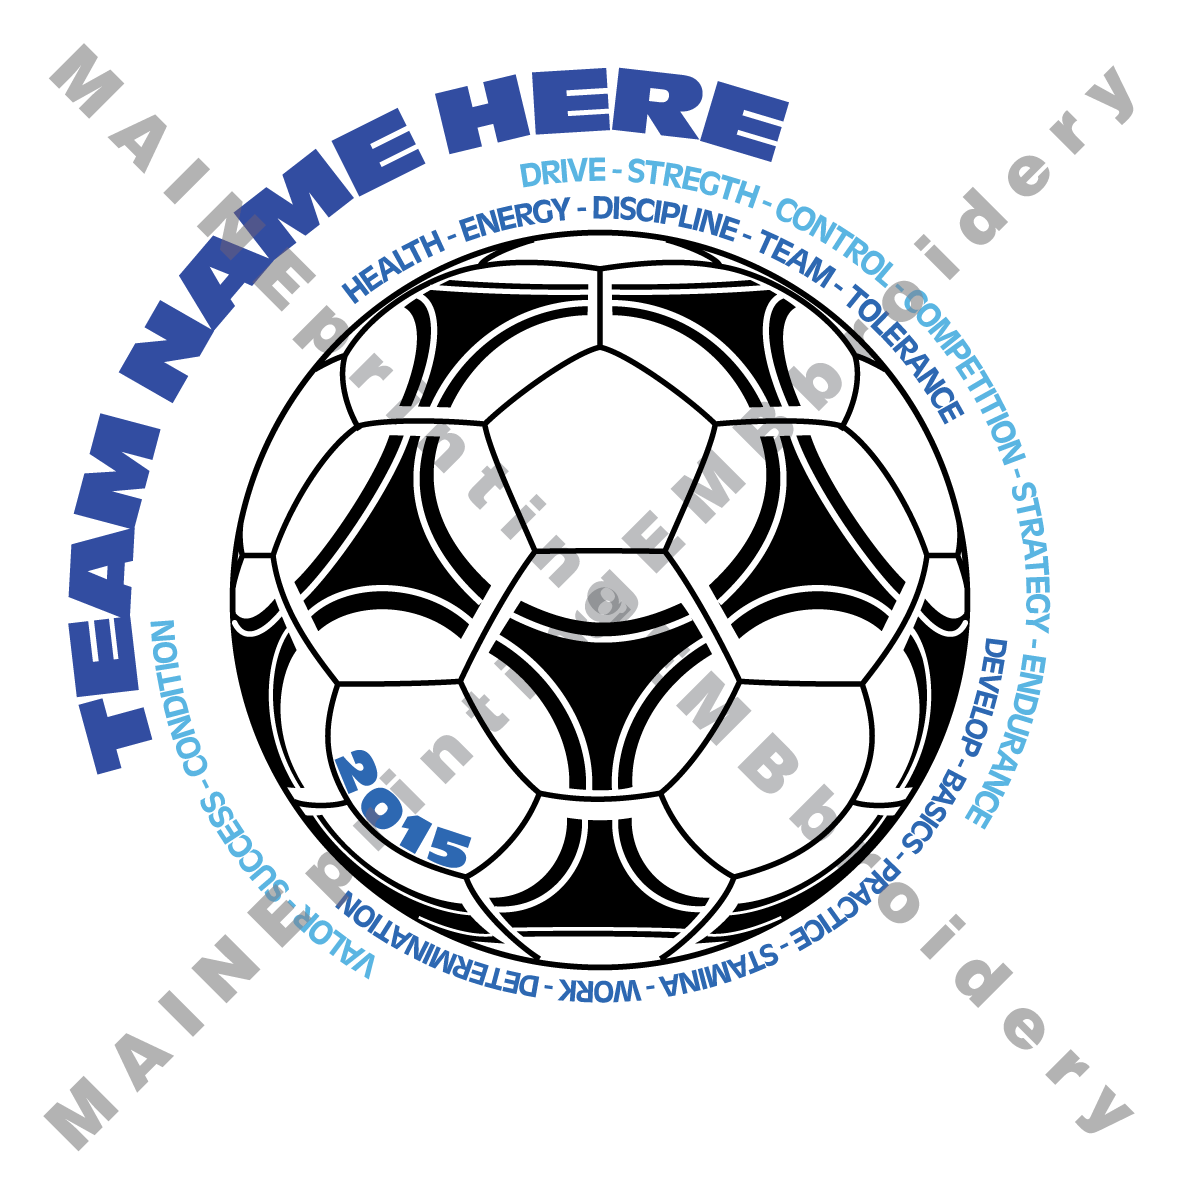 soccer shirt design - Soccer T Shirt Design Ideas